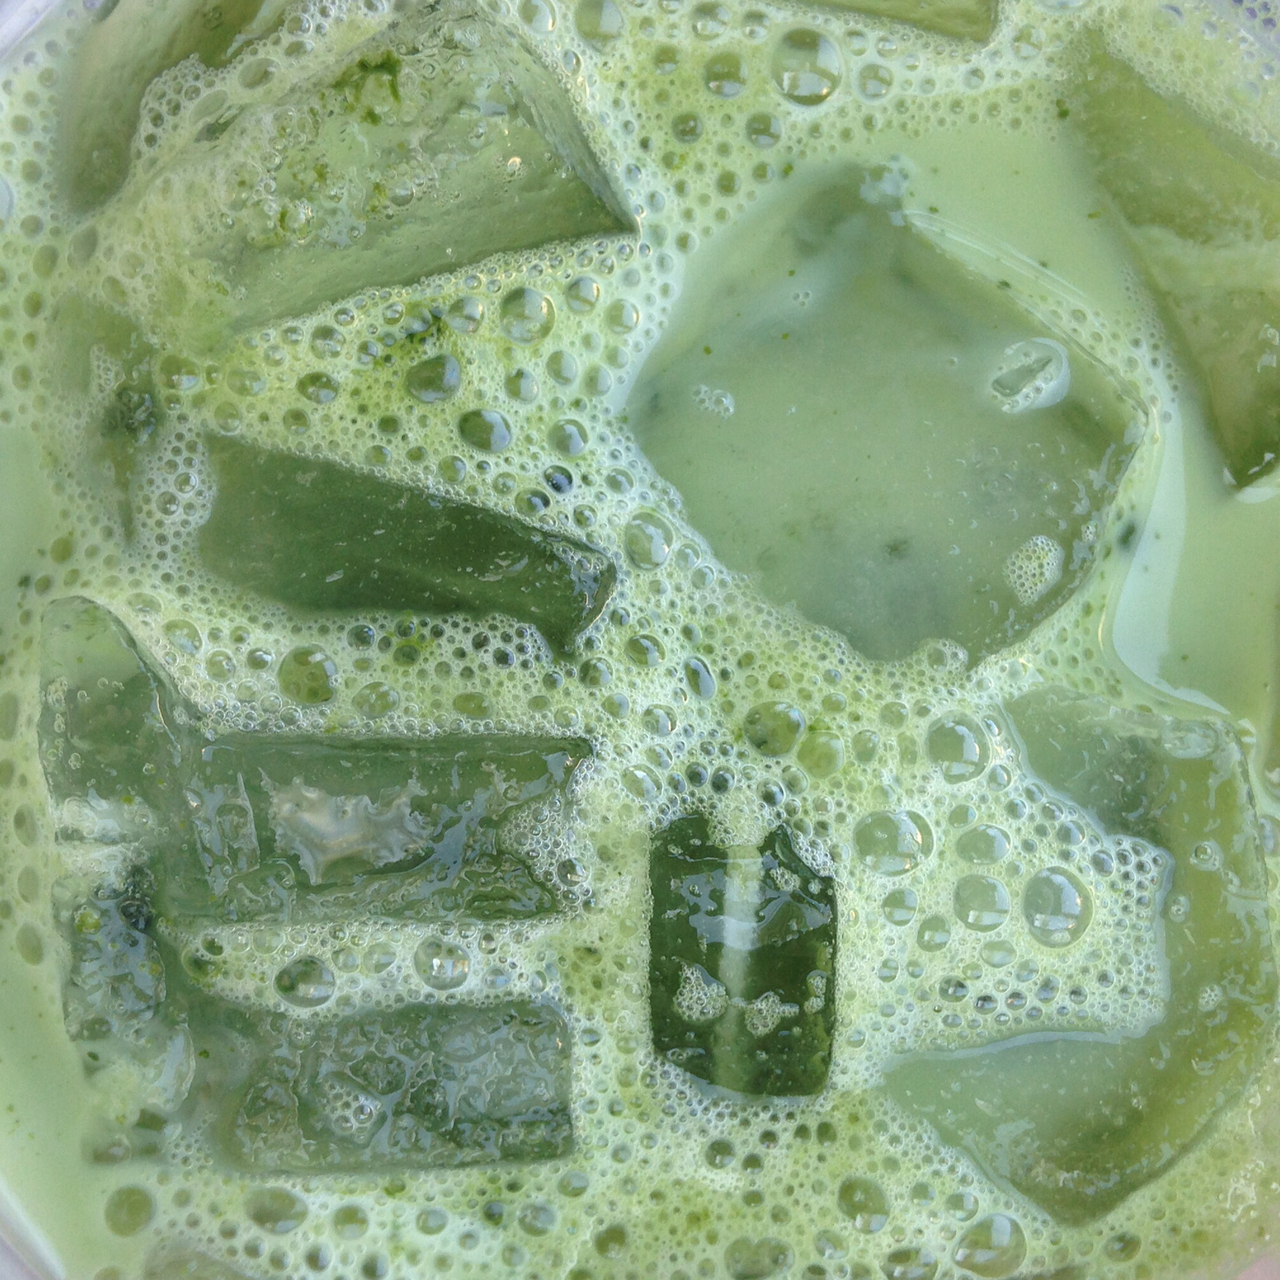 Iced Green Tea Uploaded By Hunne On We Heart It